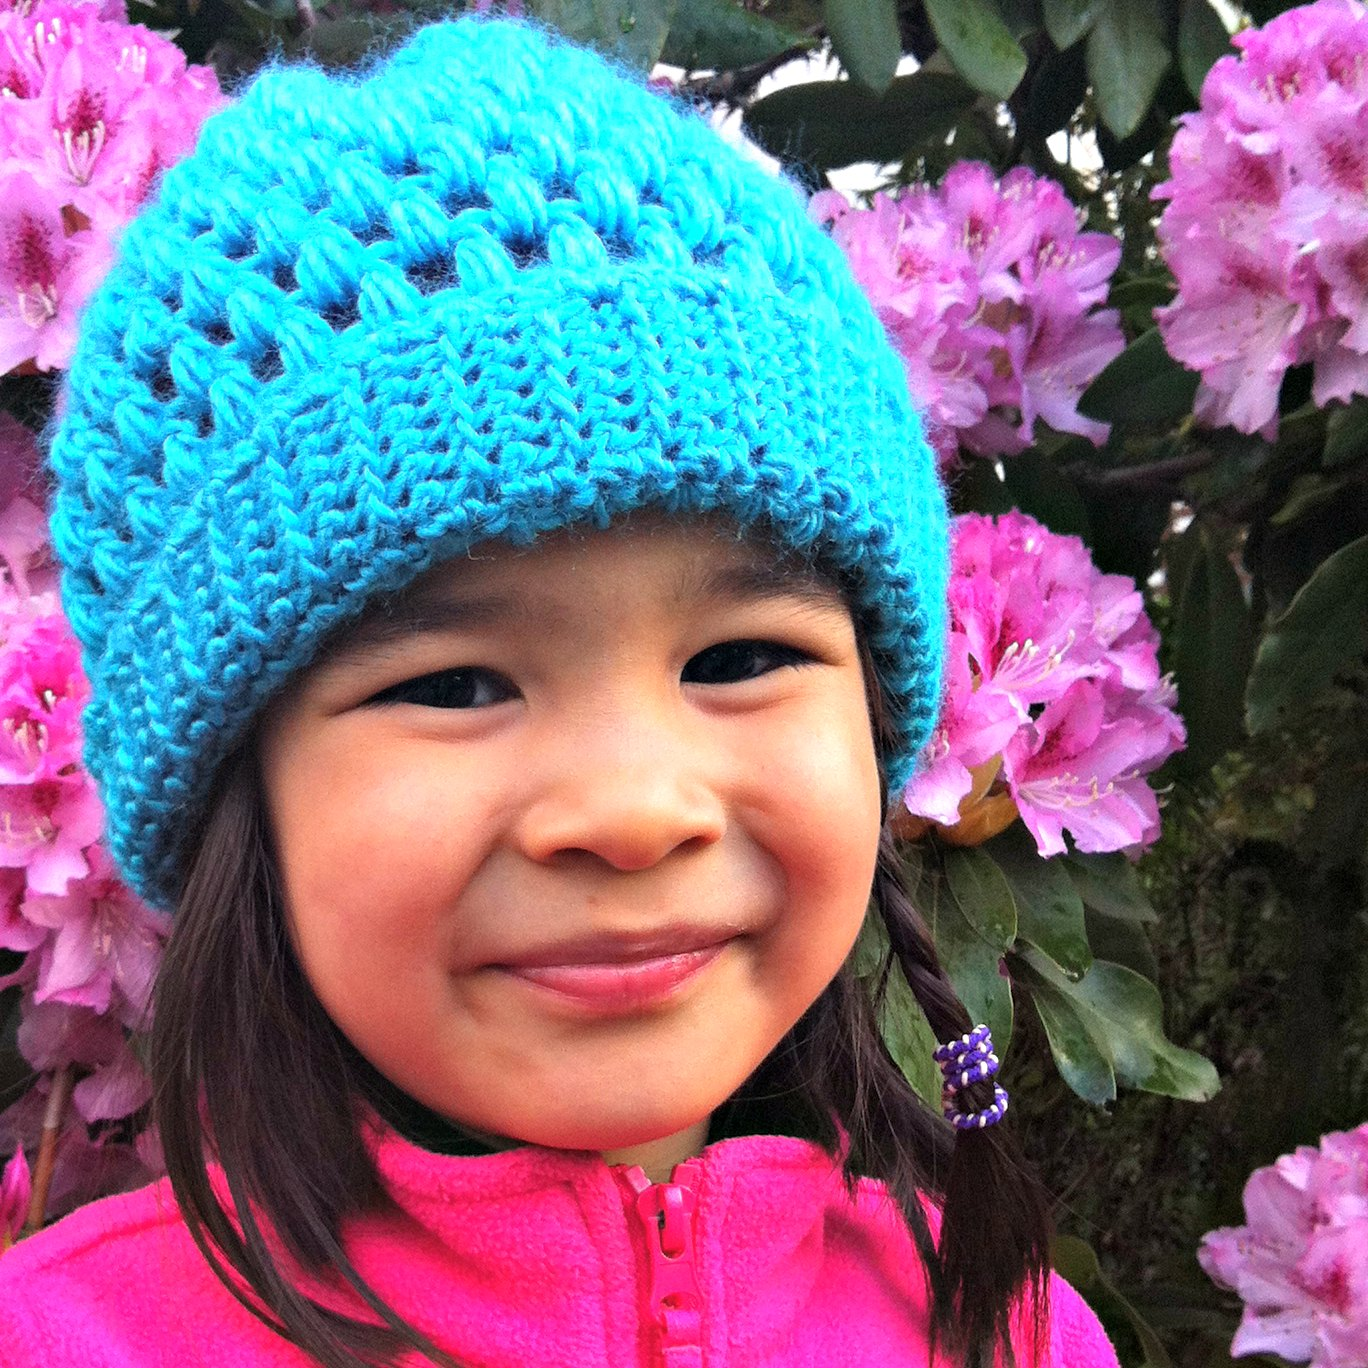 Crochet Patterns Hats For Toddlers : Sew Creative Crocheted Kids Slouch Hat Pattern- Great for ...